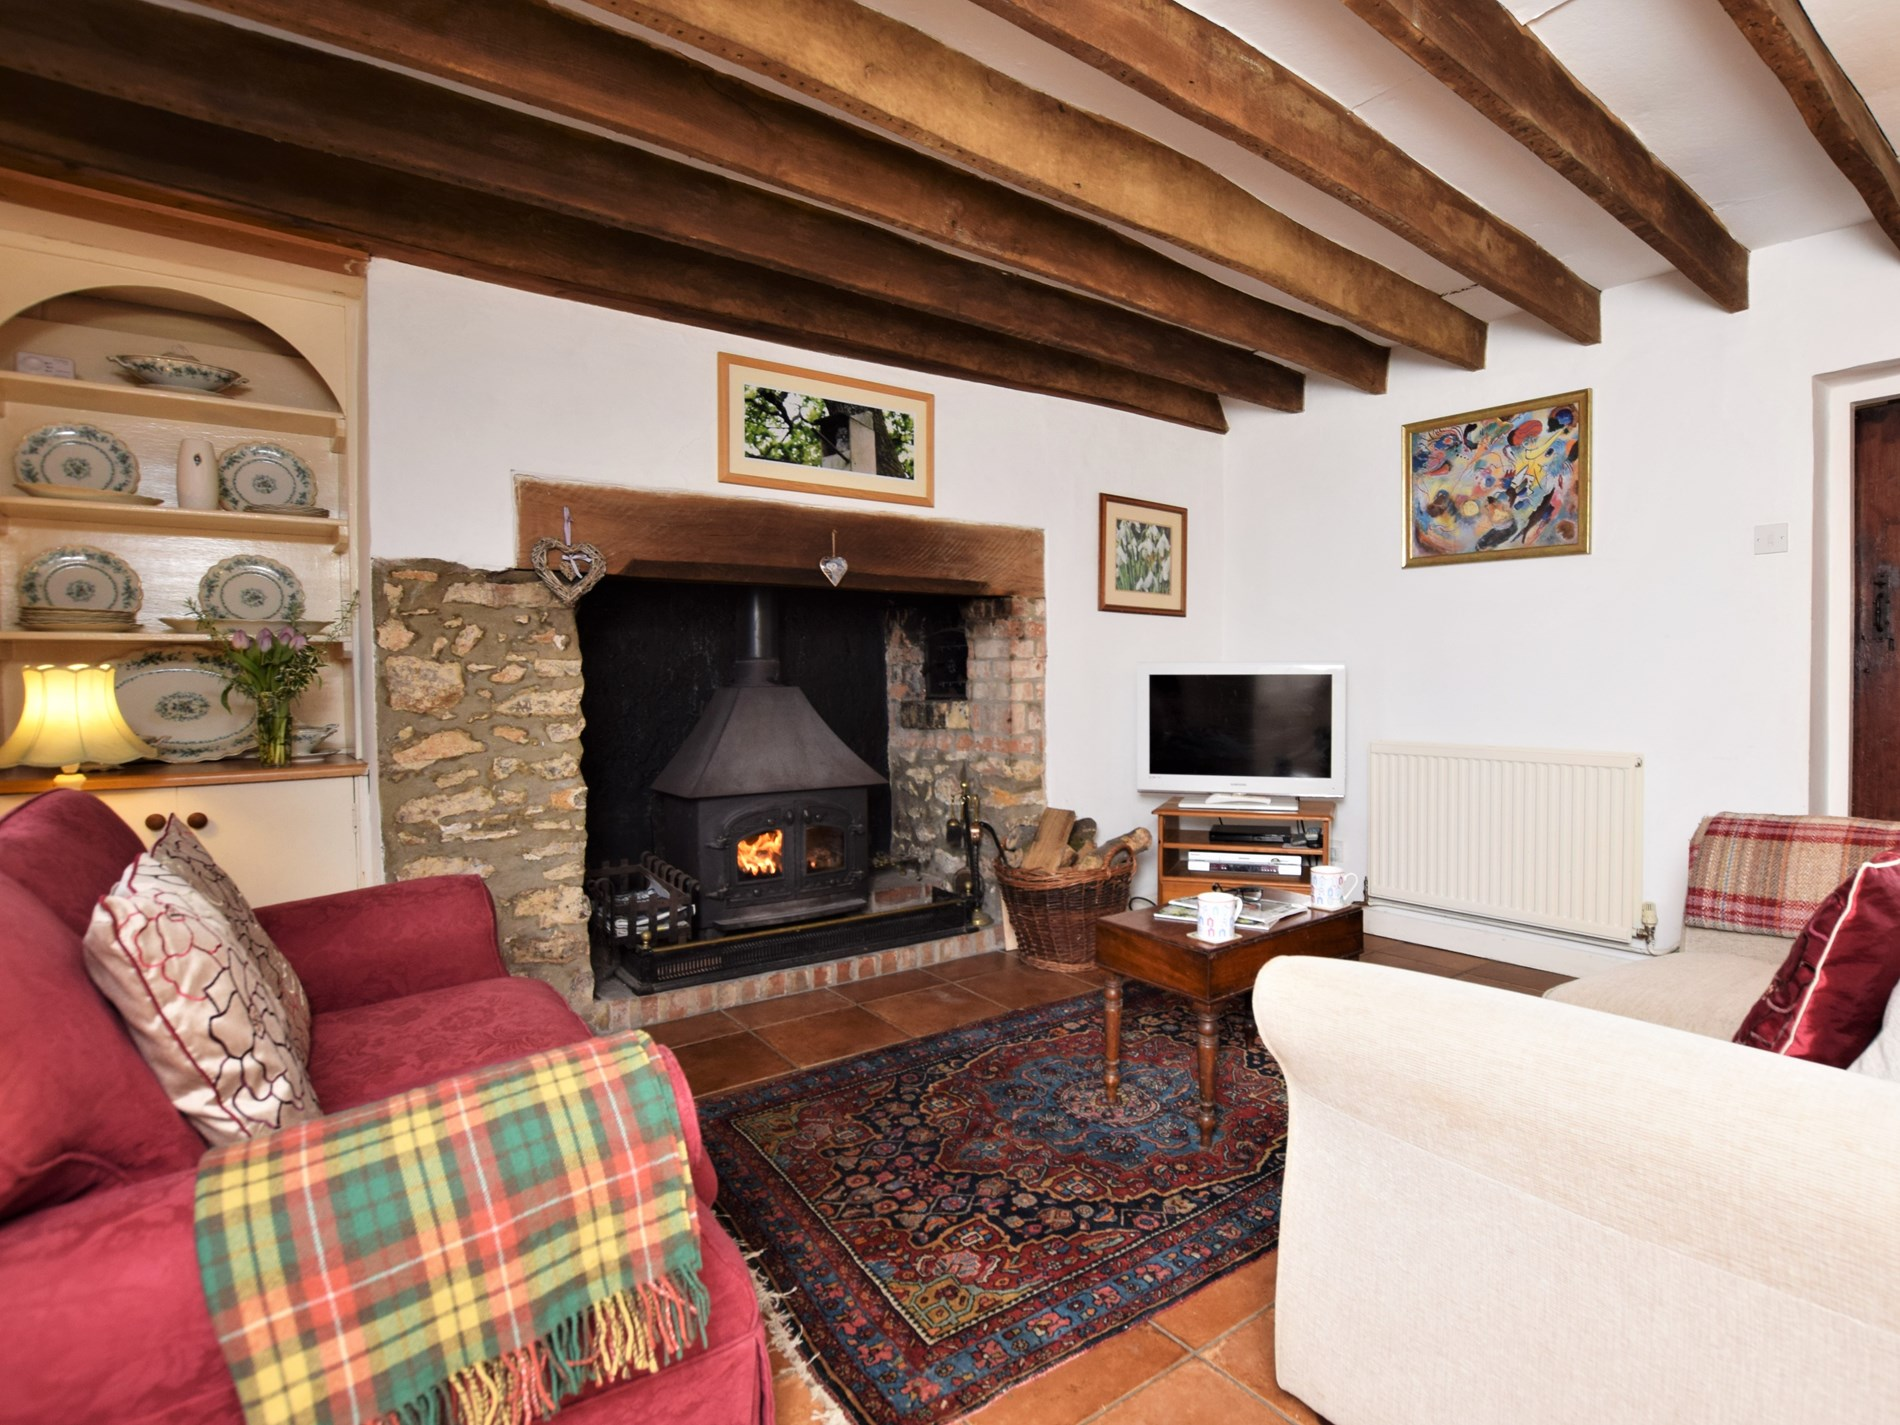 3 Bedroom Cottage in Taunton, Dorset and Somerset